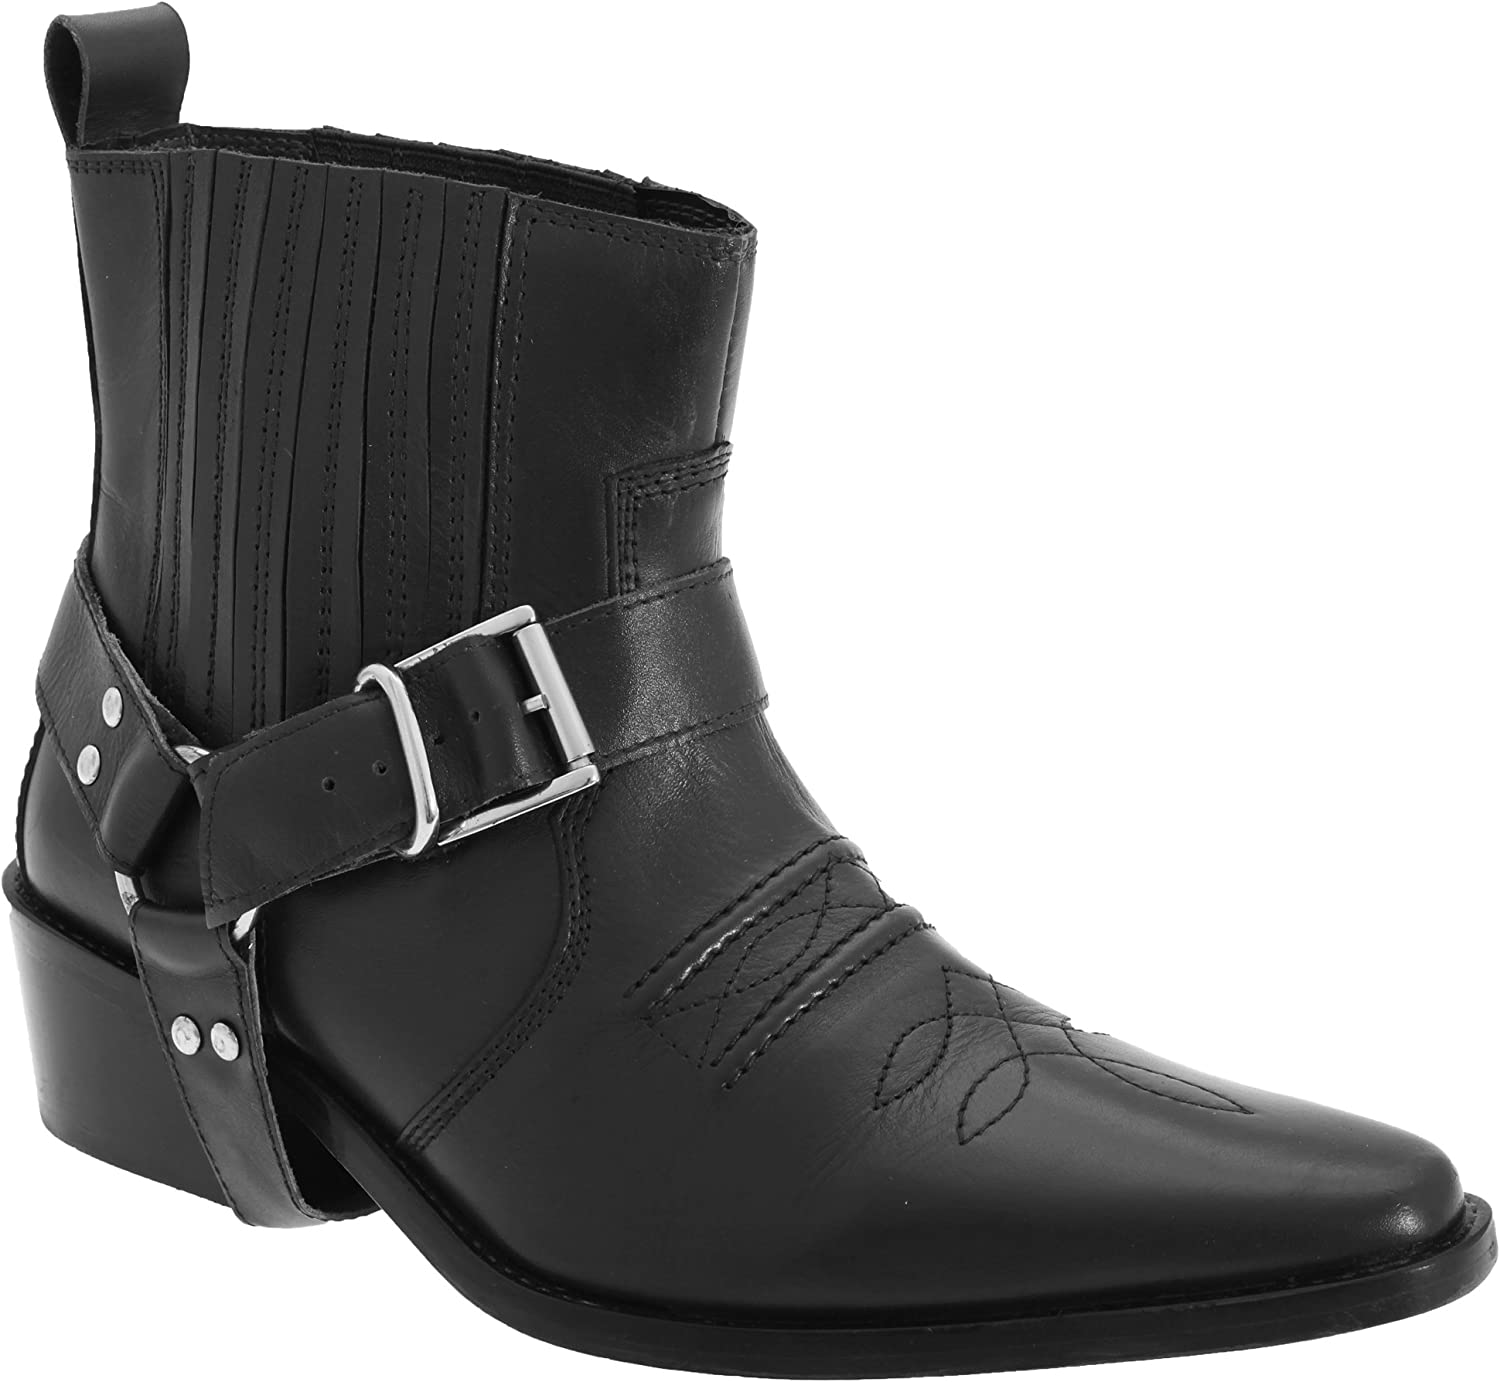 Gringos Mens Low Clive Leather Western Ankle Boots